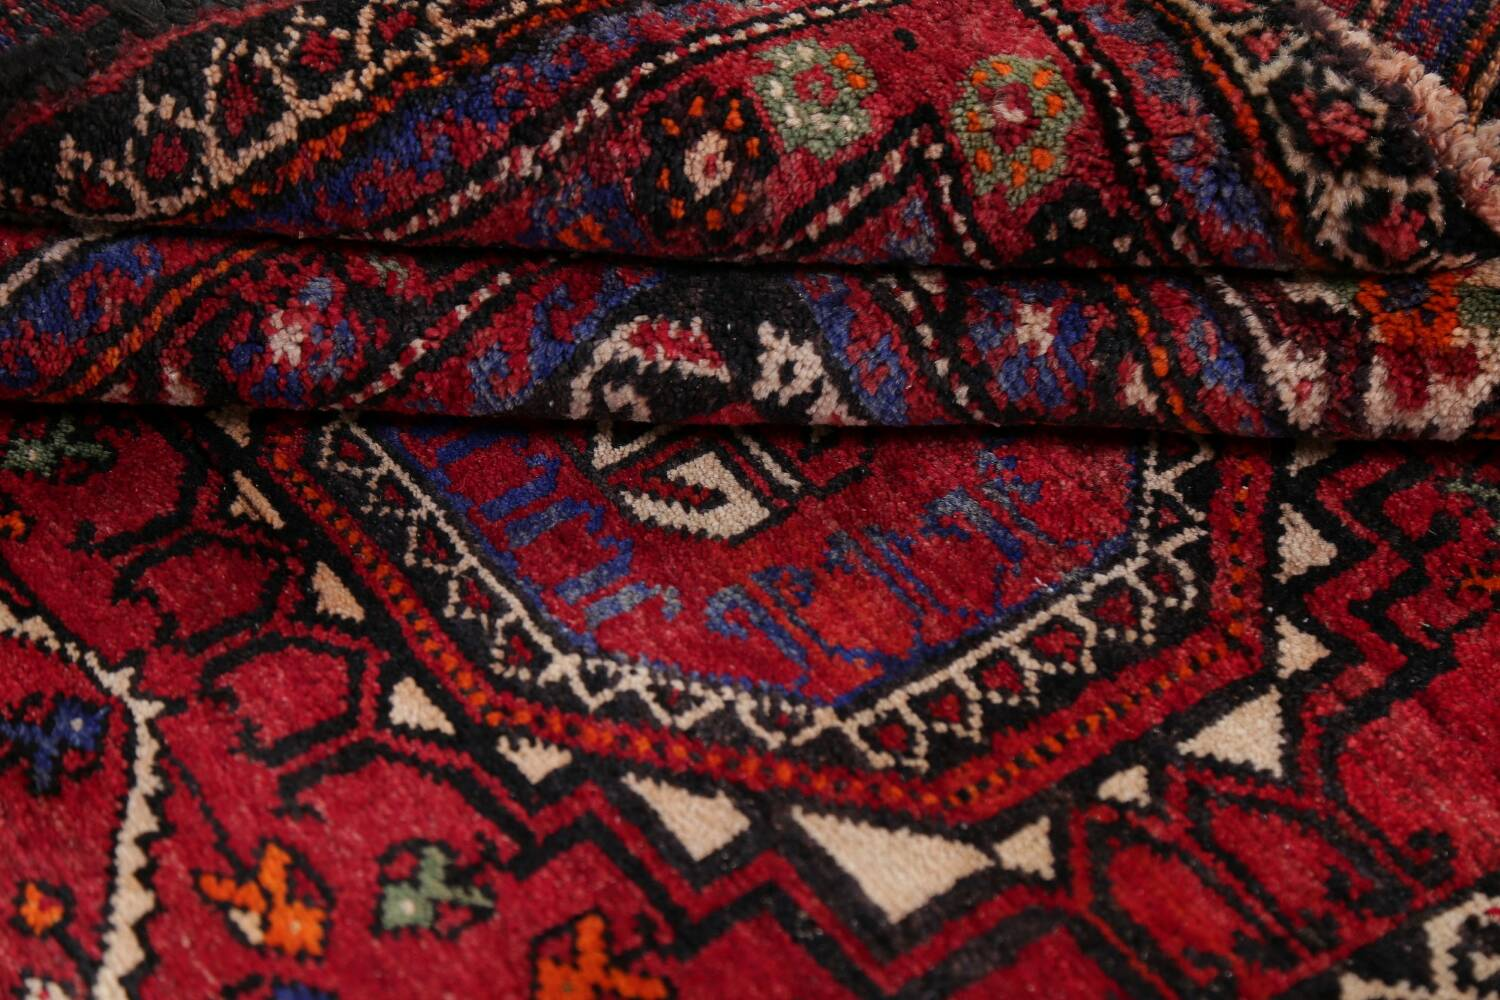 Vintage Geometric Red Malayer Persian Runner Rug 4x9 image 17